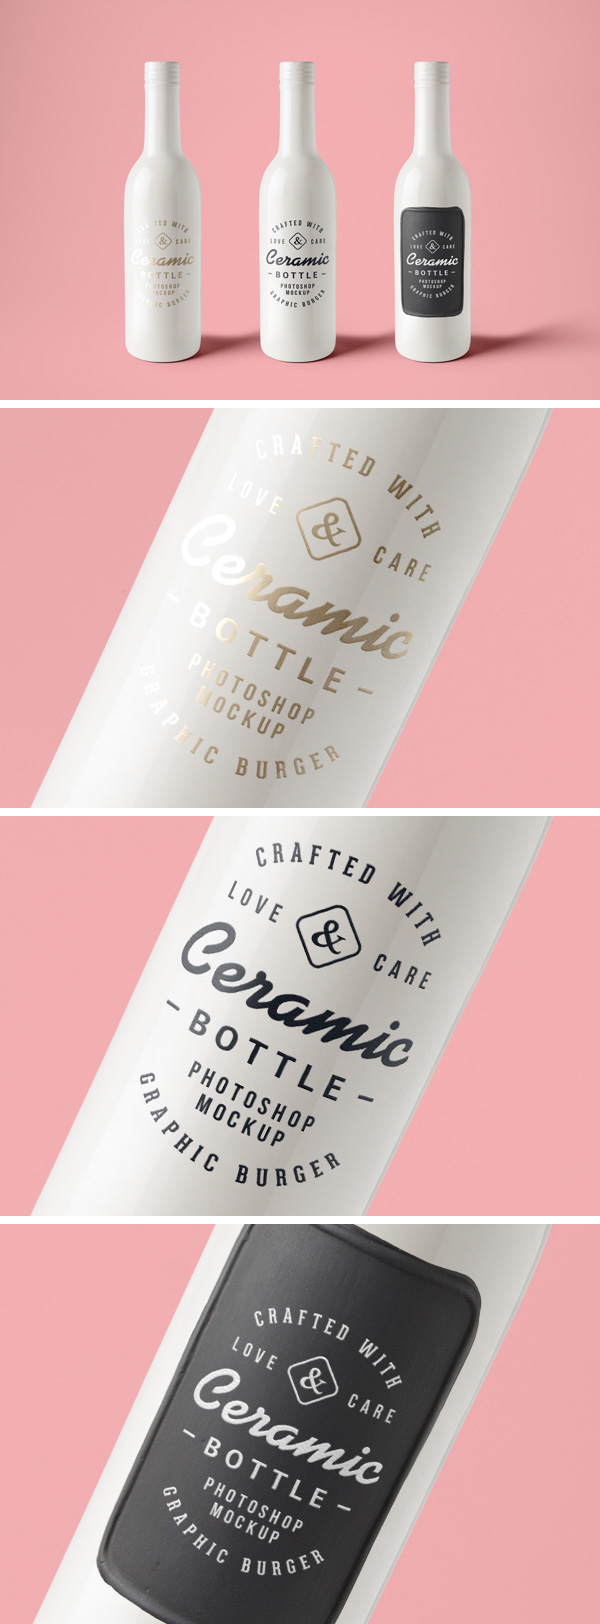 CERAMIC BOTTLES PSD MOCKUP